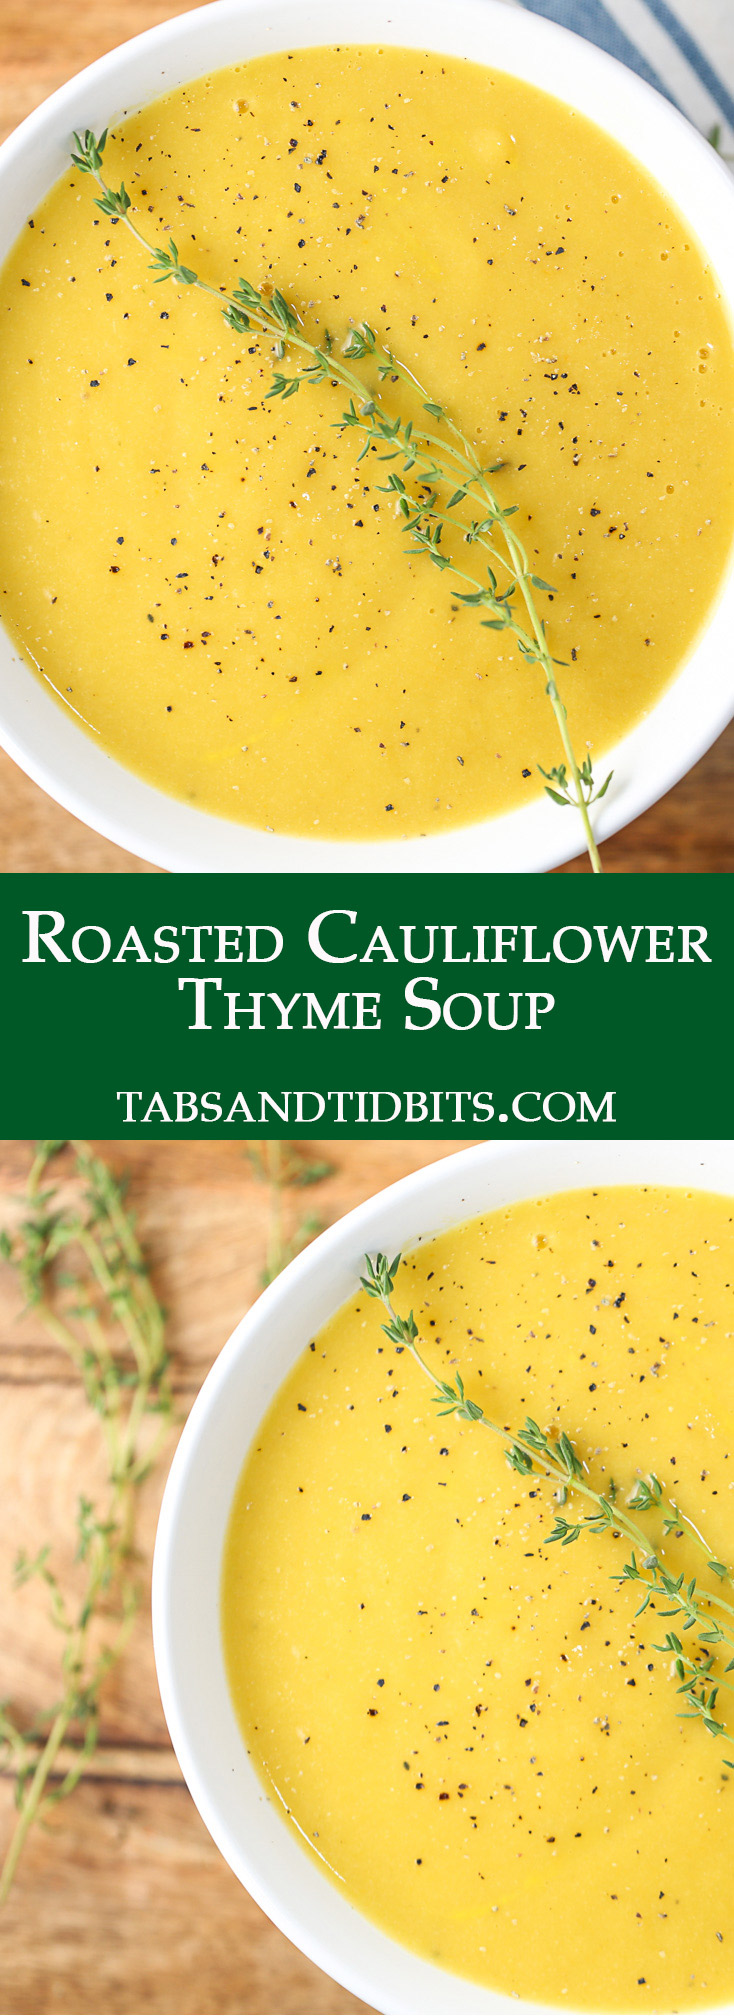 Roasted cauliflower and veggies are pureed into a nutritious and satisfying vegan soup!